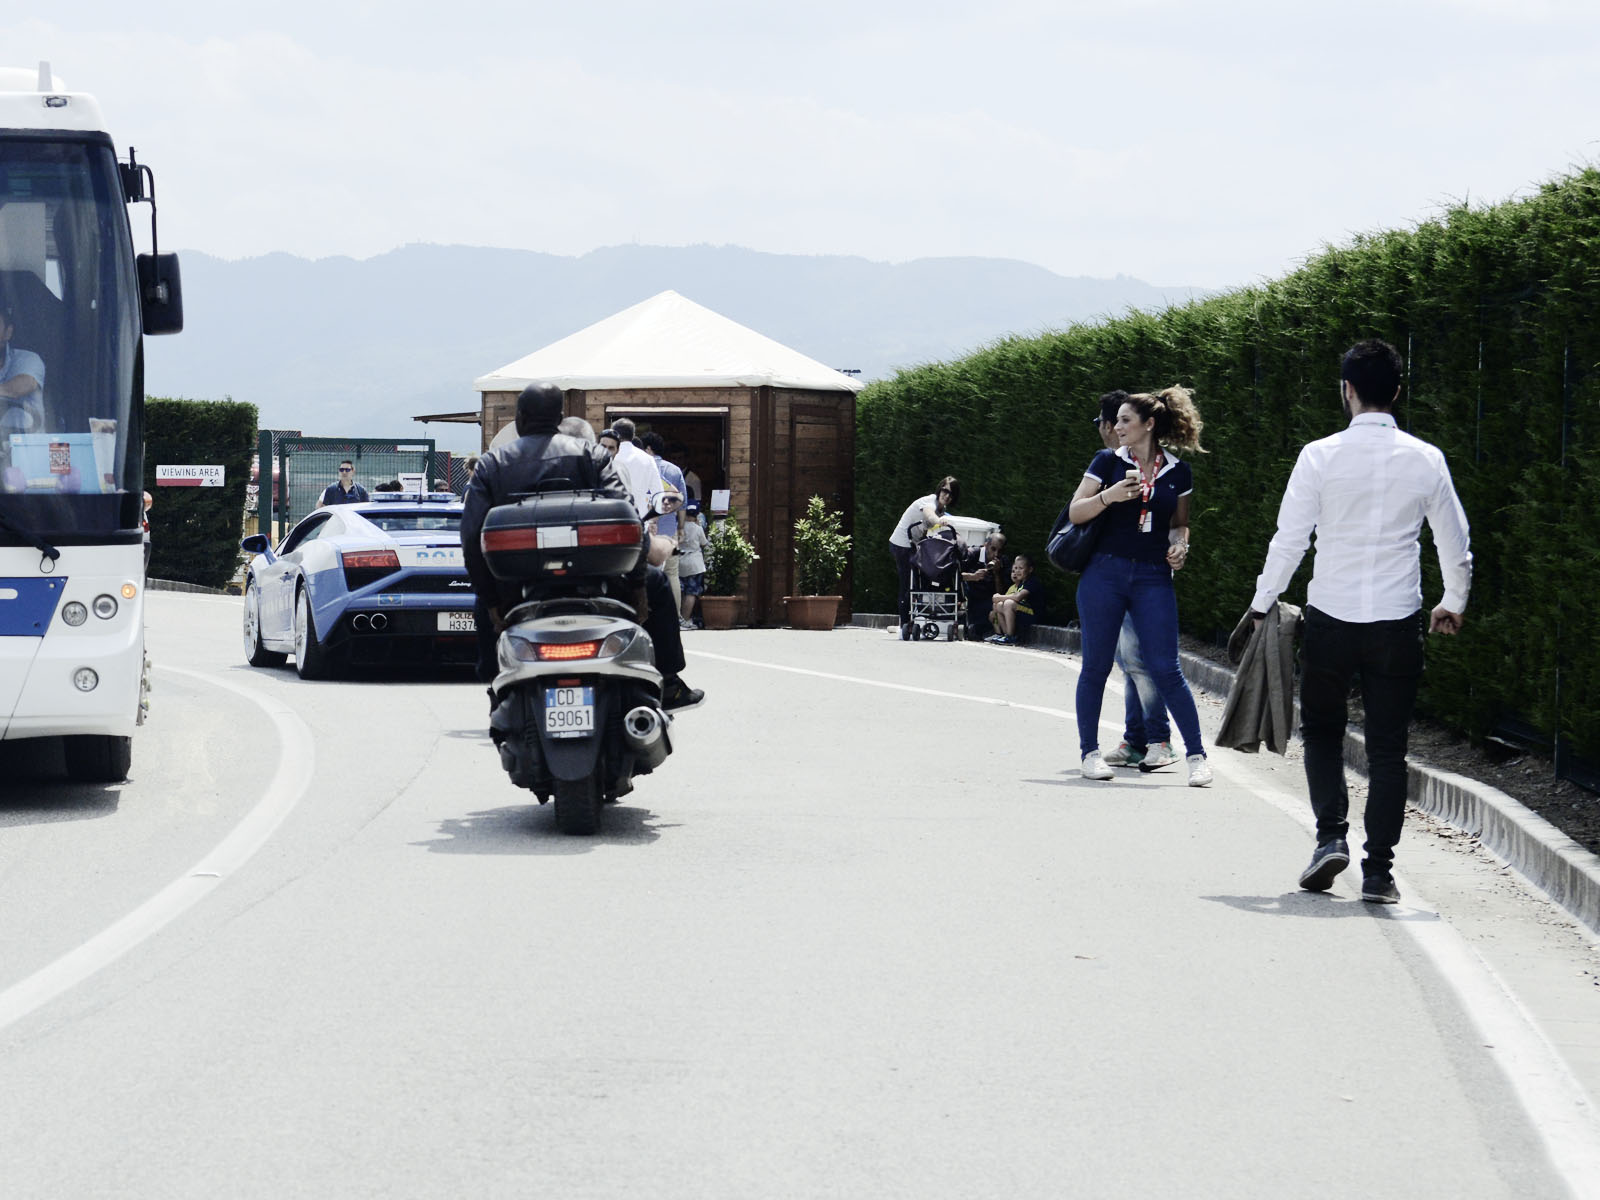 The B&S Tudor / Ducati Moto GP trip